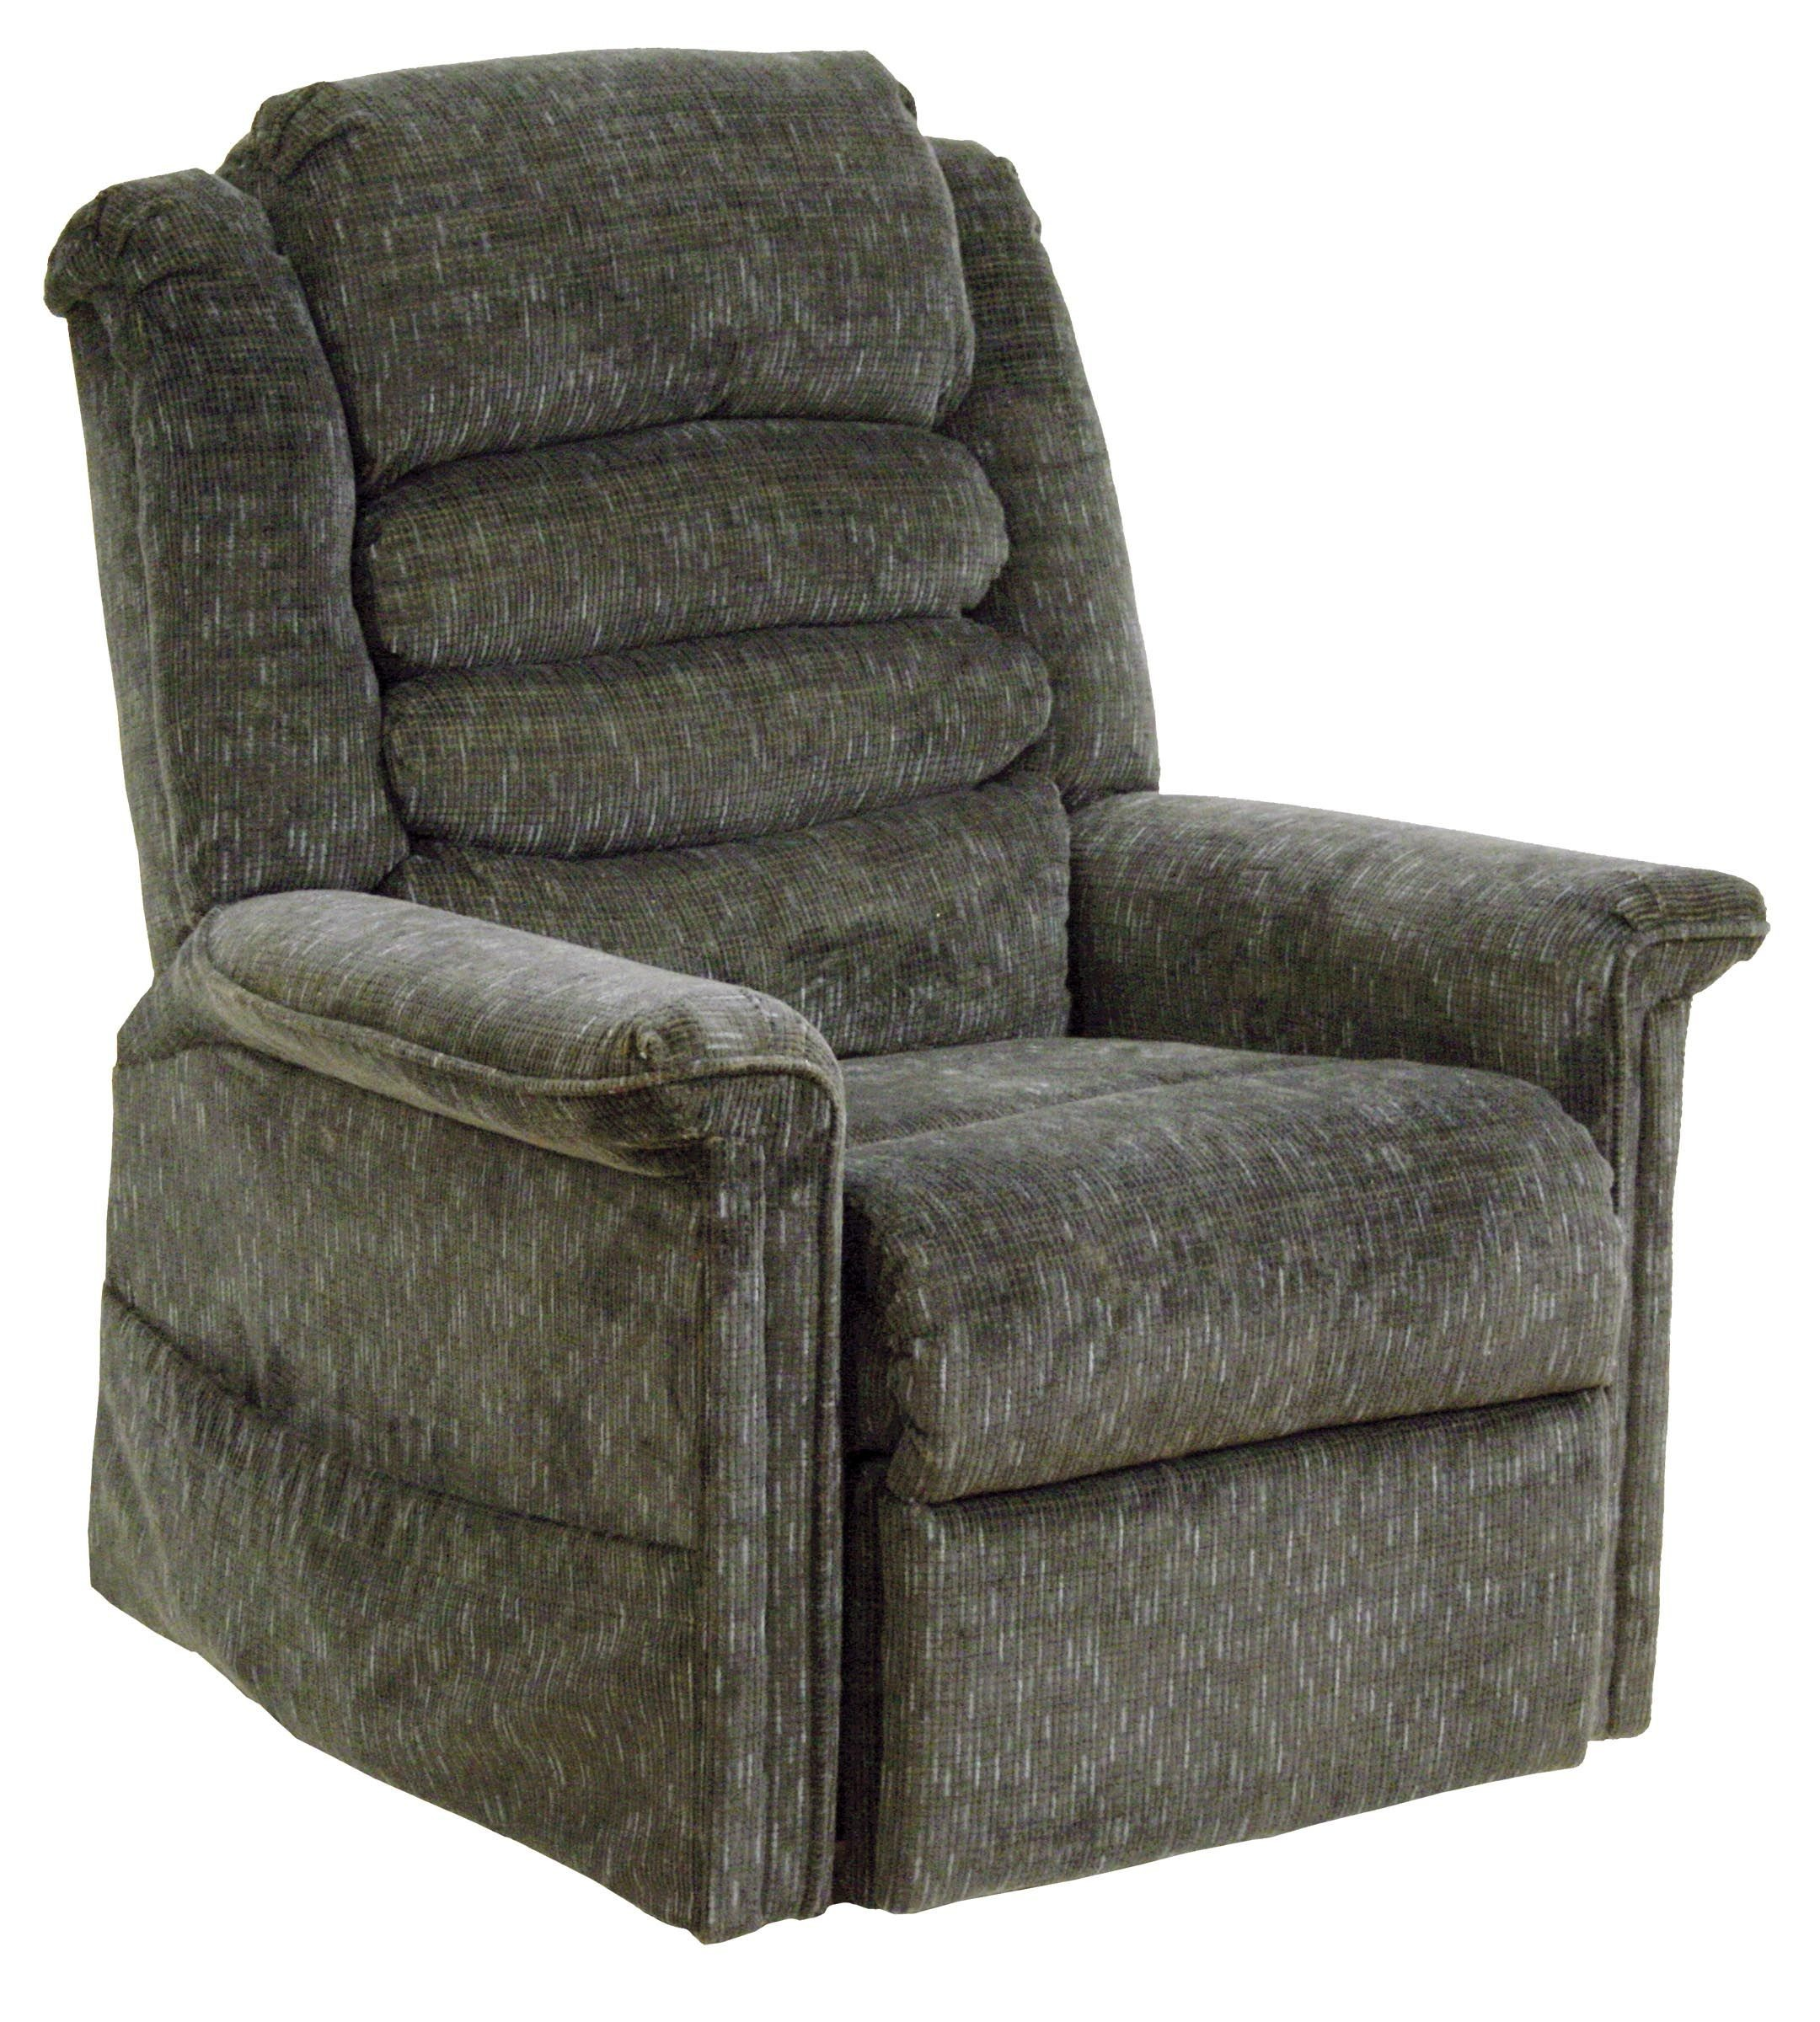 Soother woodland power lift recliner from catnapper for Catnapper cloud nine chaise recliner